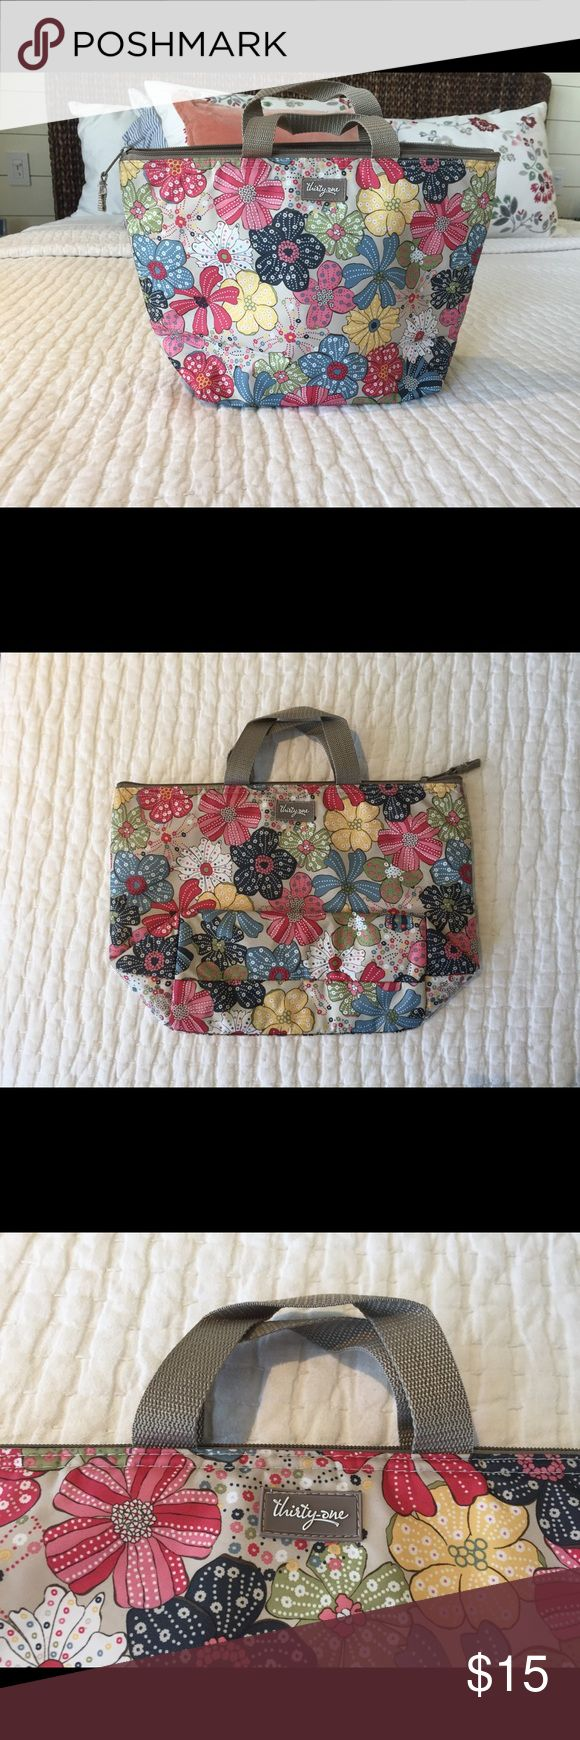 Thirty-one Lunch Bag Thirty-one insulted lunch bag. Adorable Floral print. Slight flaw on the interior, and two small holes on the bottom back corners of the bag. Flaws shown in picture. Does not at all affect the use of the bag. Smoke and pet free home! Thirty-one Bags